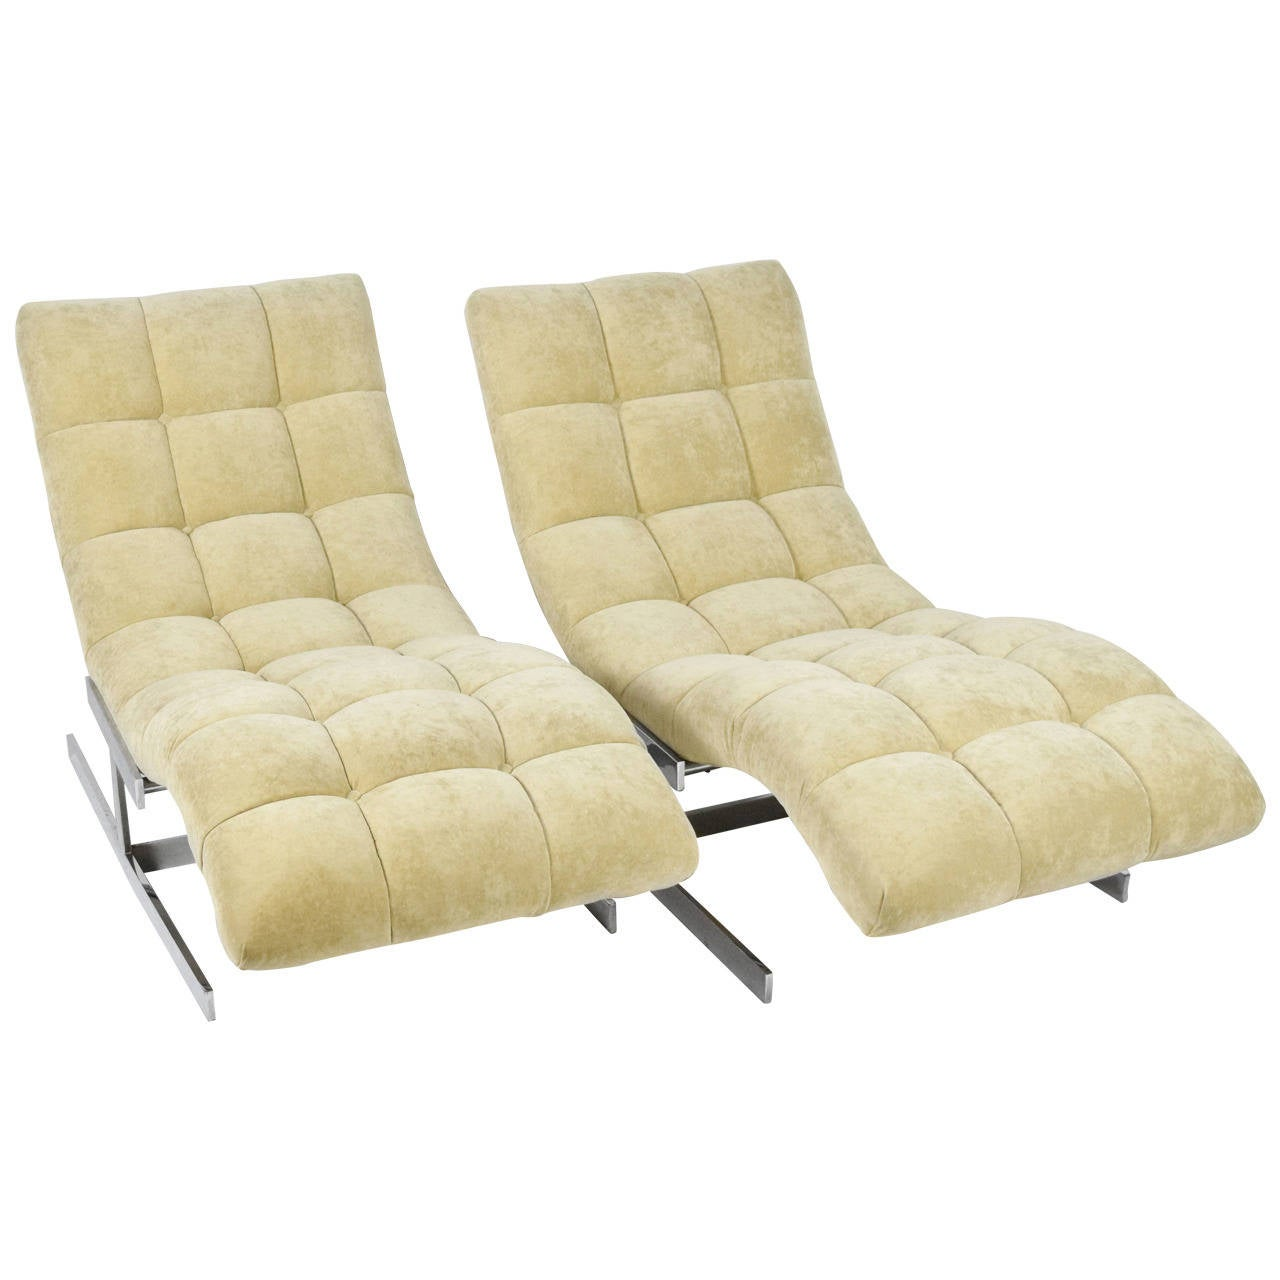 Milo baughman chaise lounges at 1stdibs for Chaise longue lounge